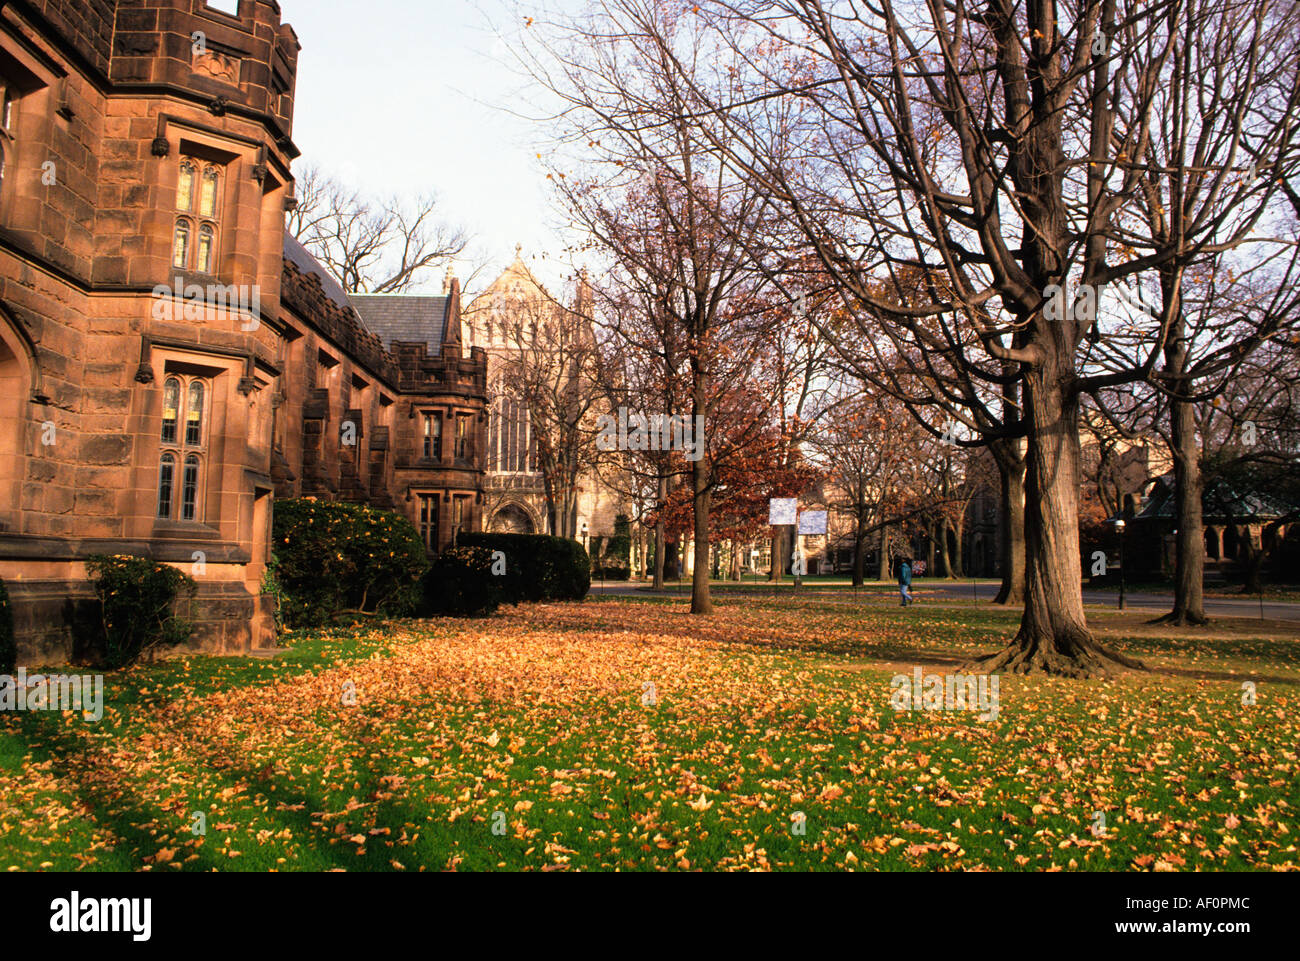 USA Princeton New Jersey The Campus at Princeton University in the Autumn - Stock Image